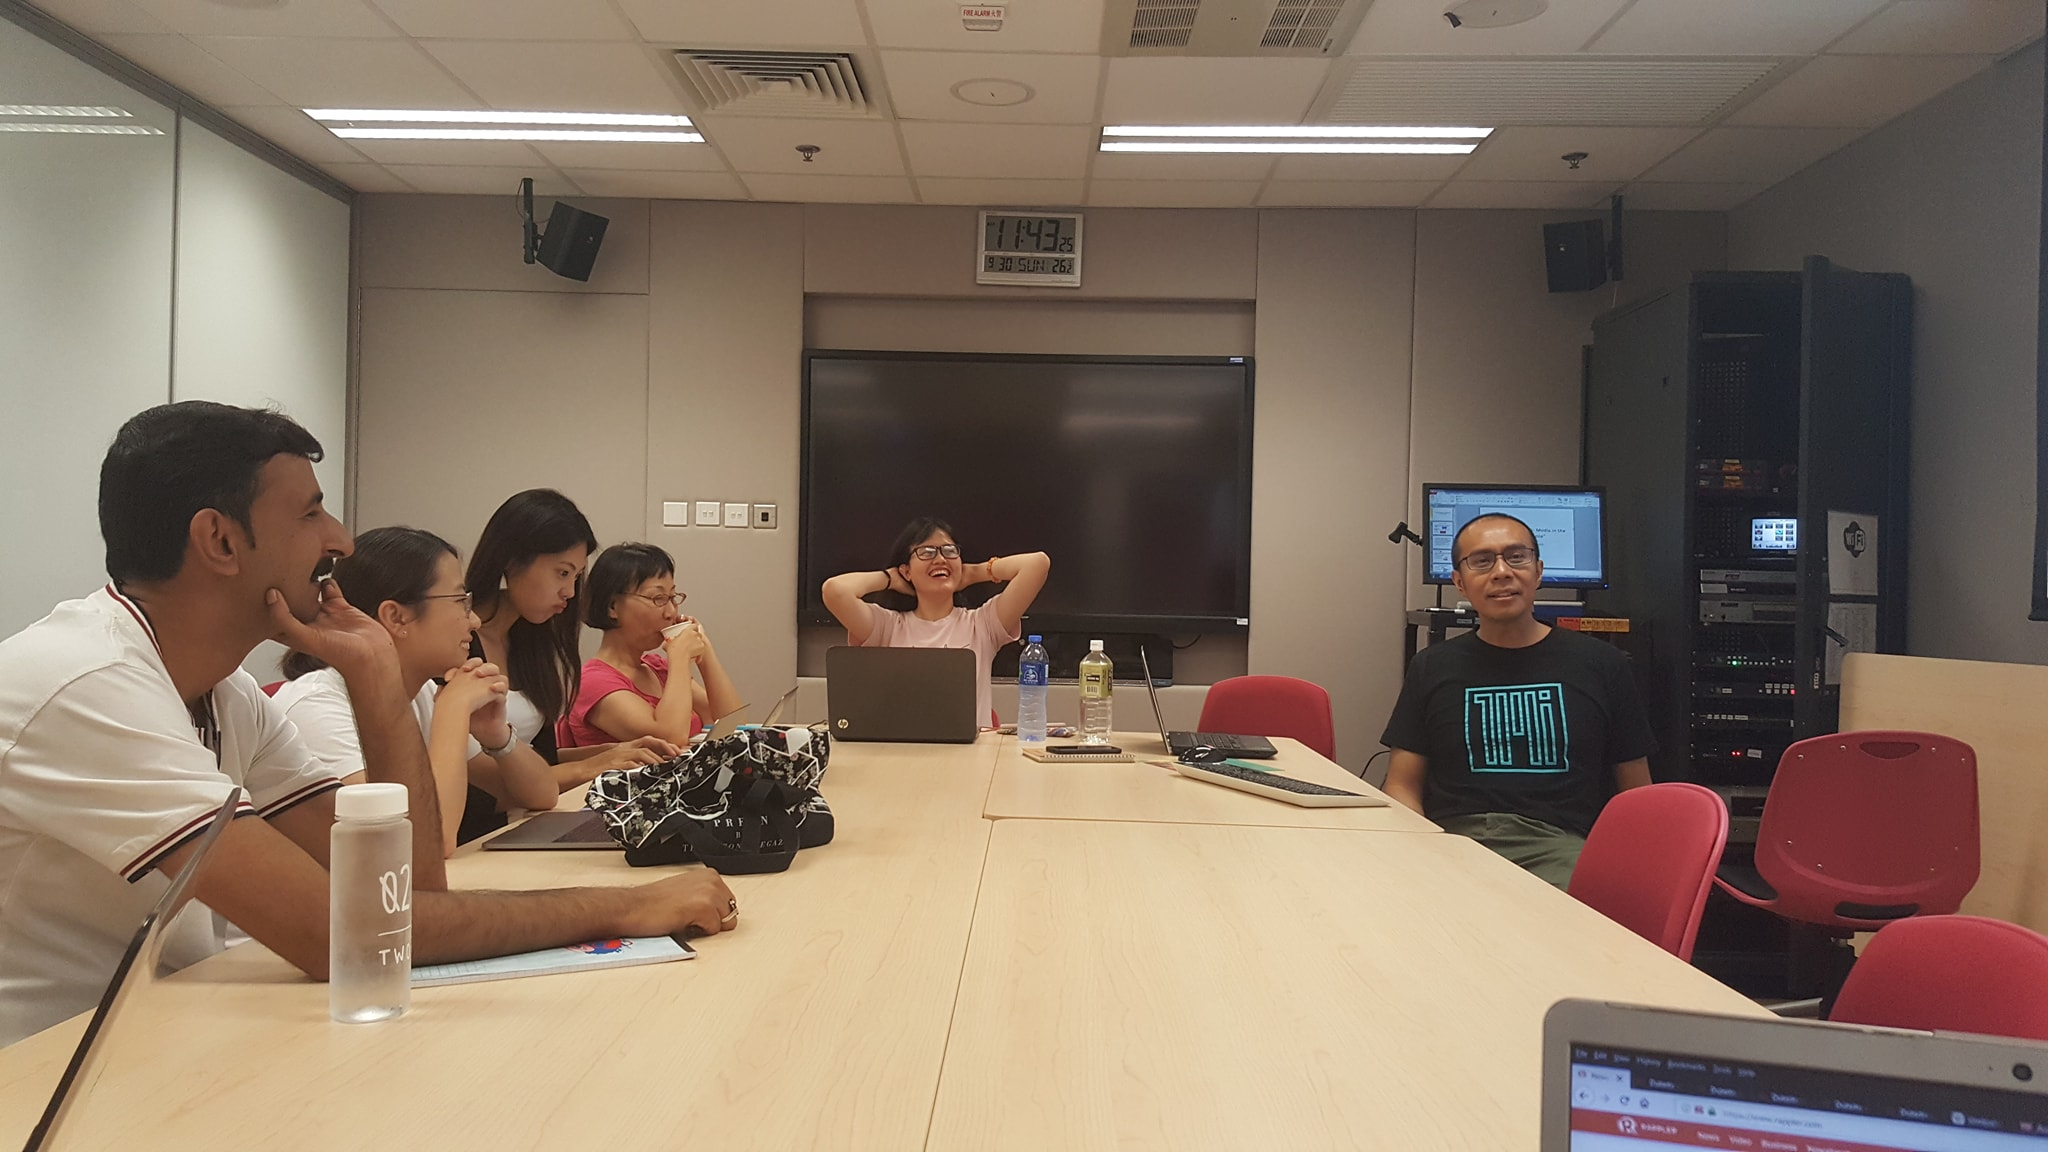 MEETING. The 9 Asian journalists would meet every Saturday to practice for the big presentation and discuss media issues. Photo by Alexa Villano/Rappler